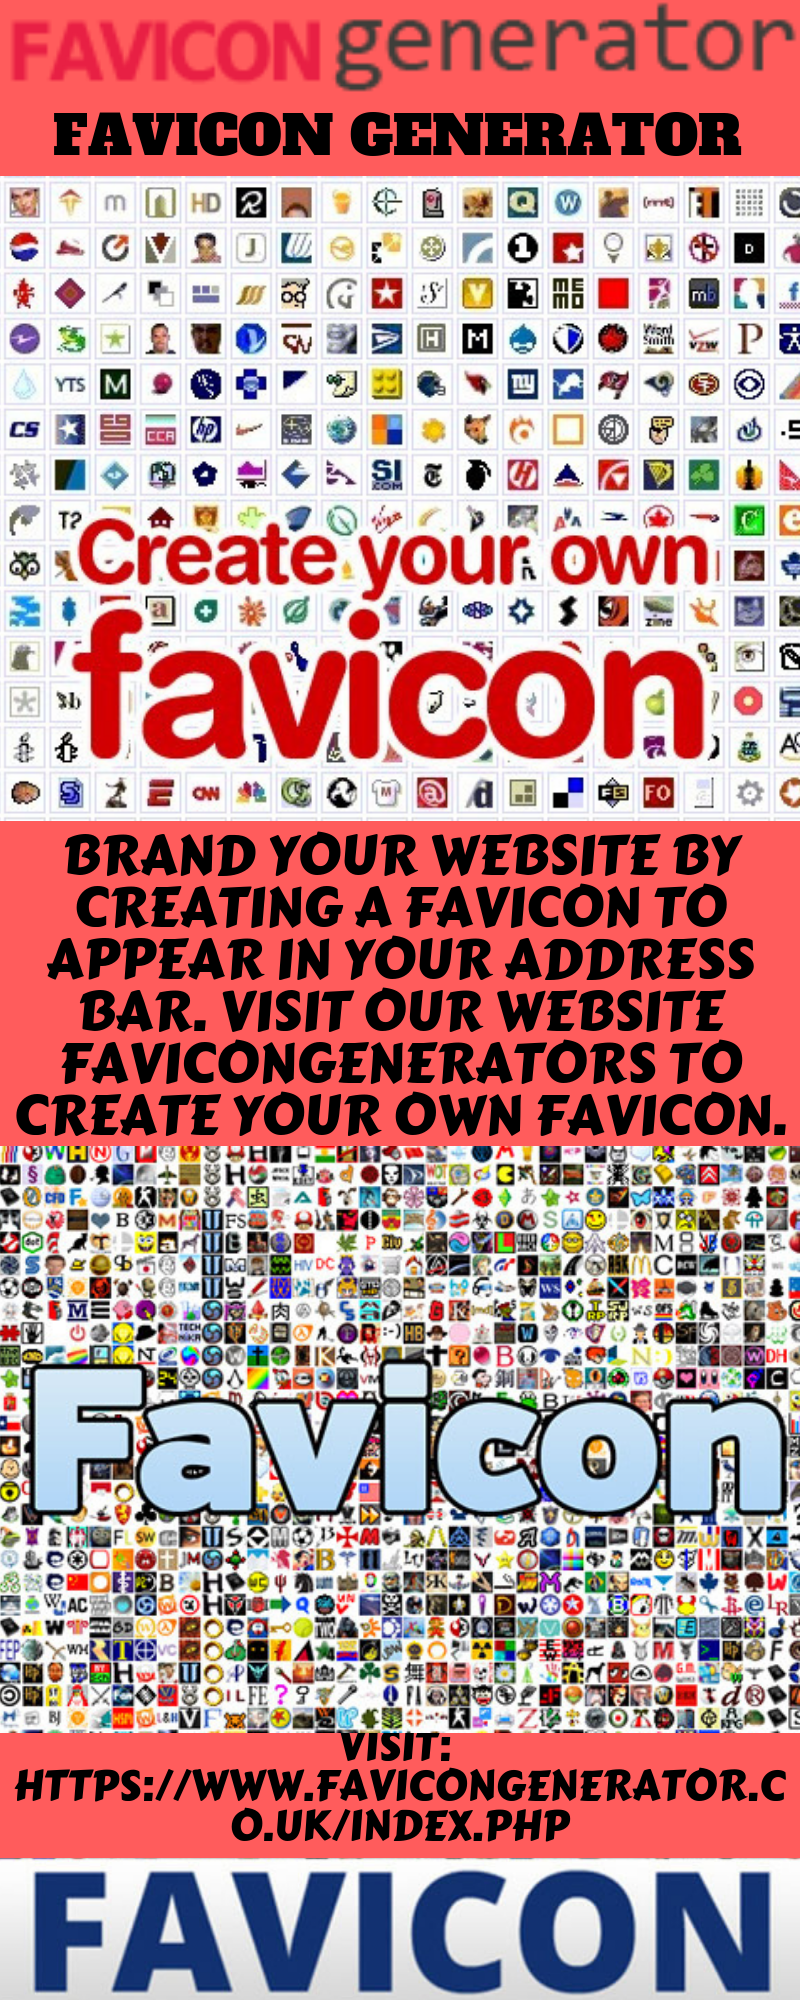 Favicon generator Brand your website by creating a favicon